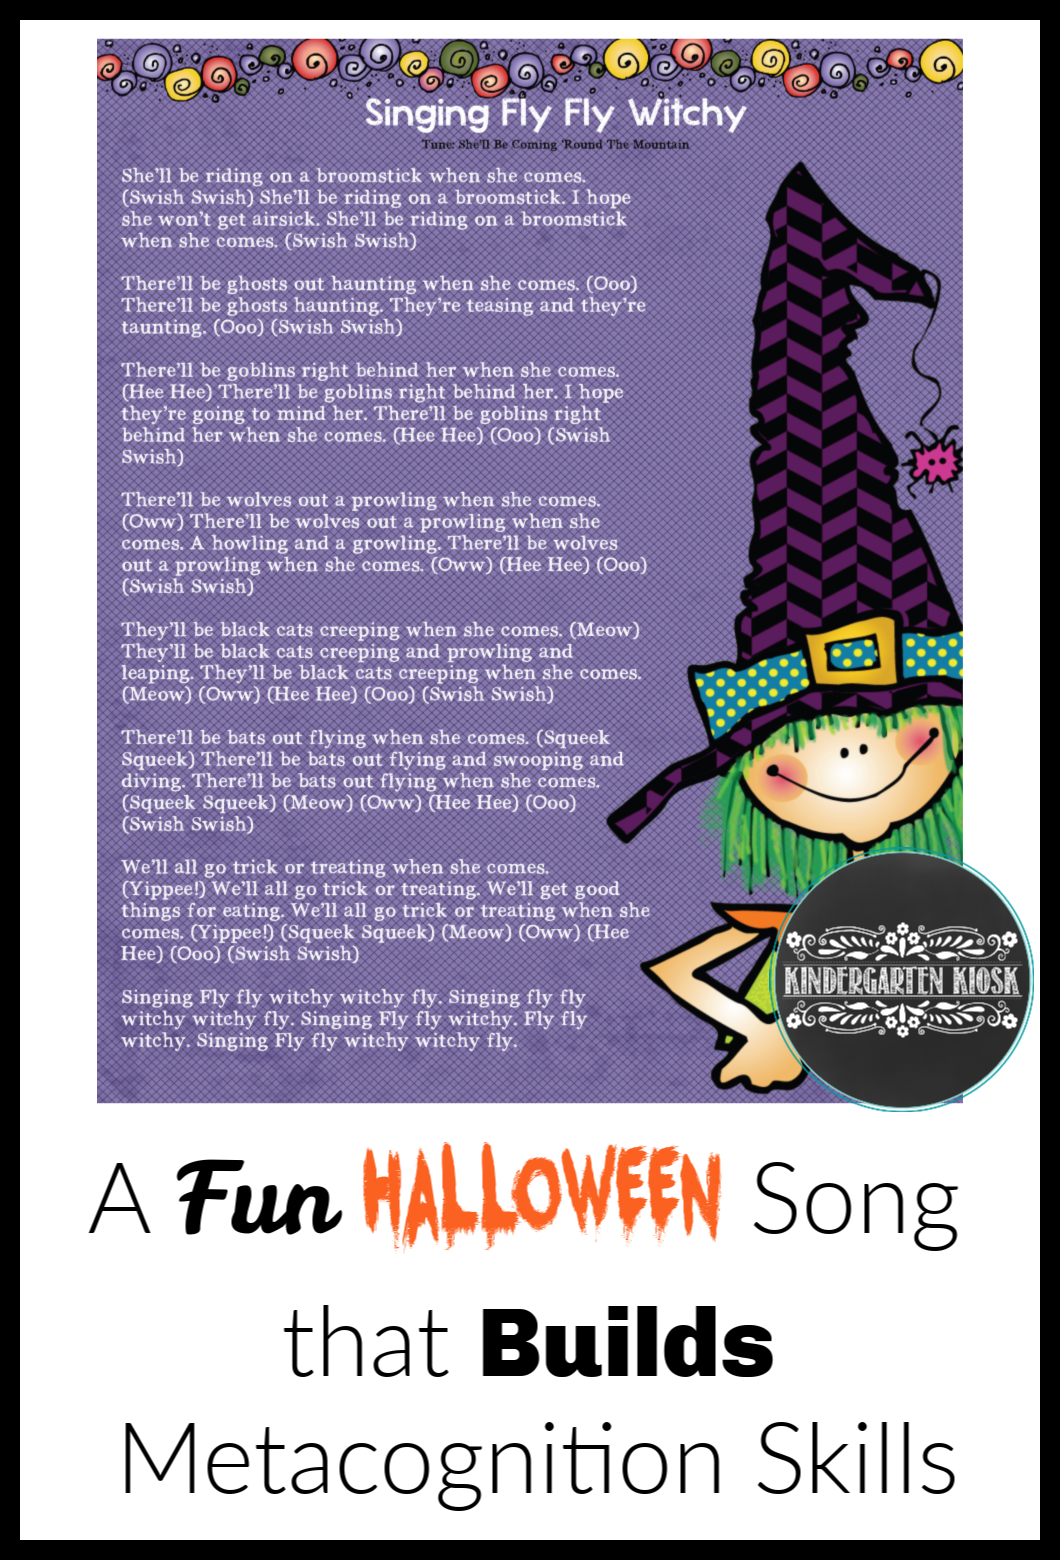 Halloween-Witch-Song.png